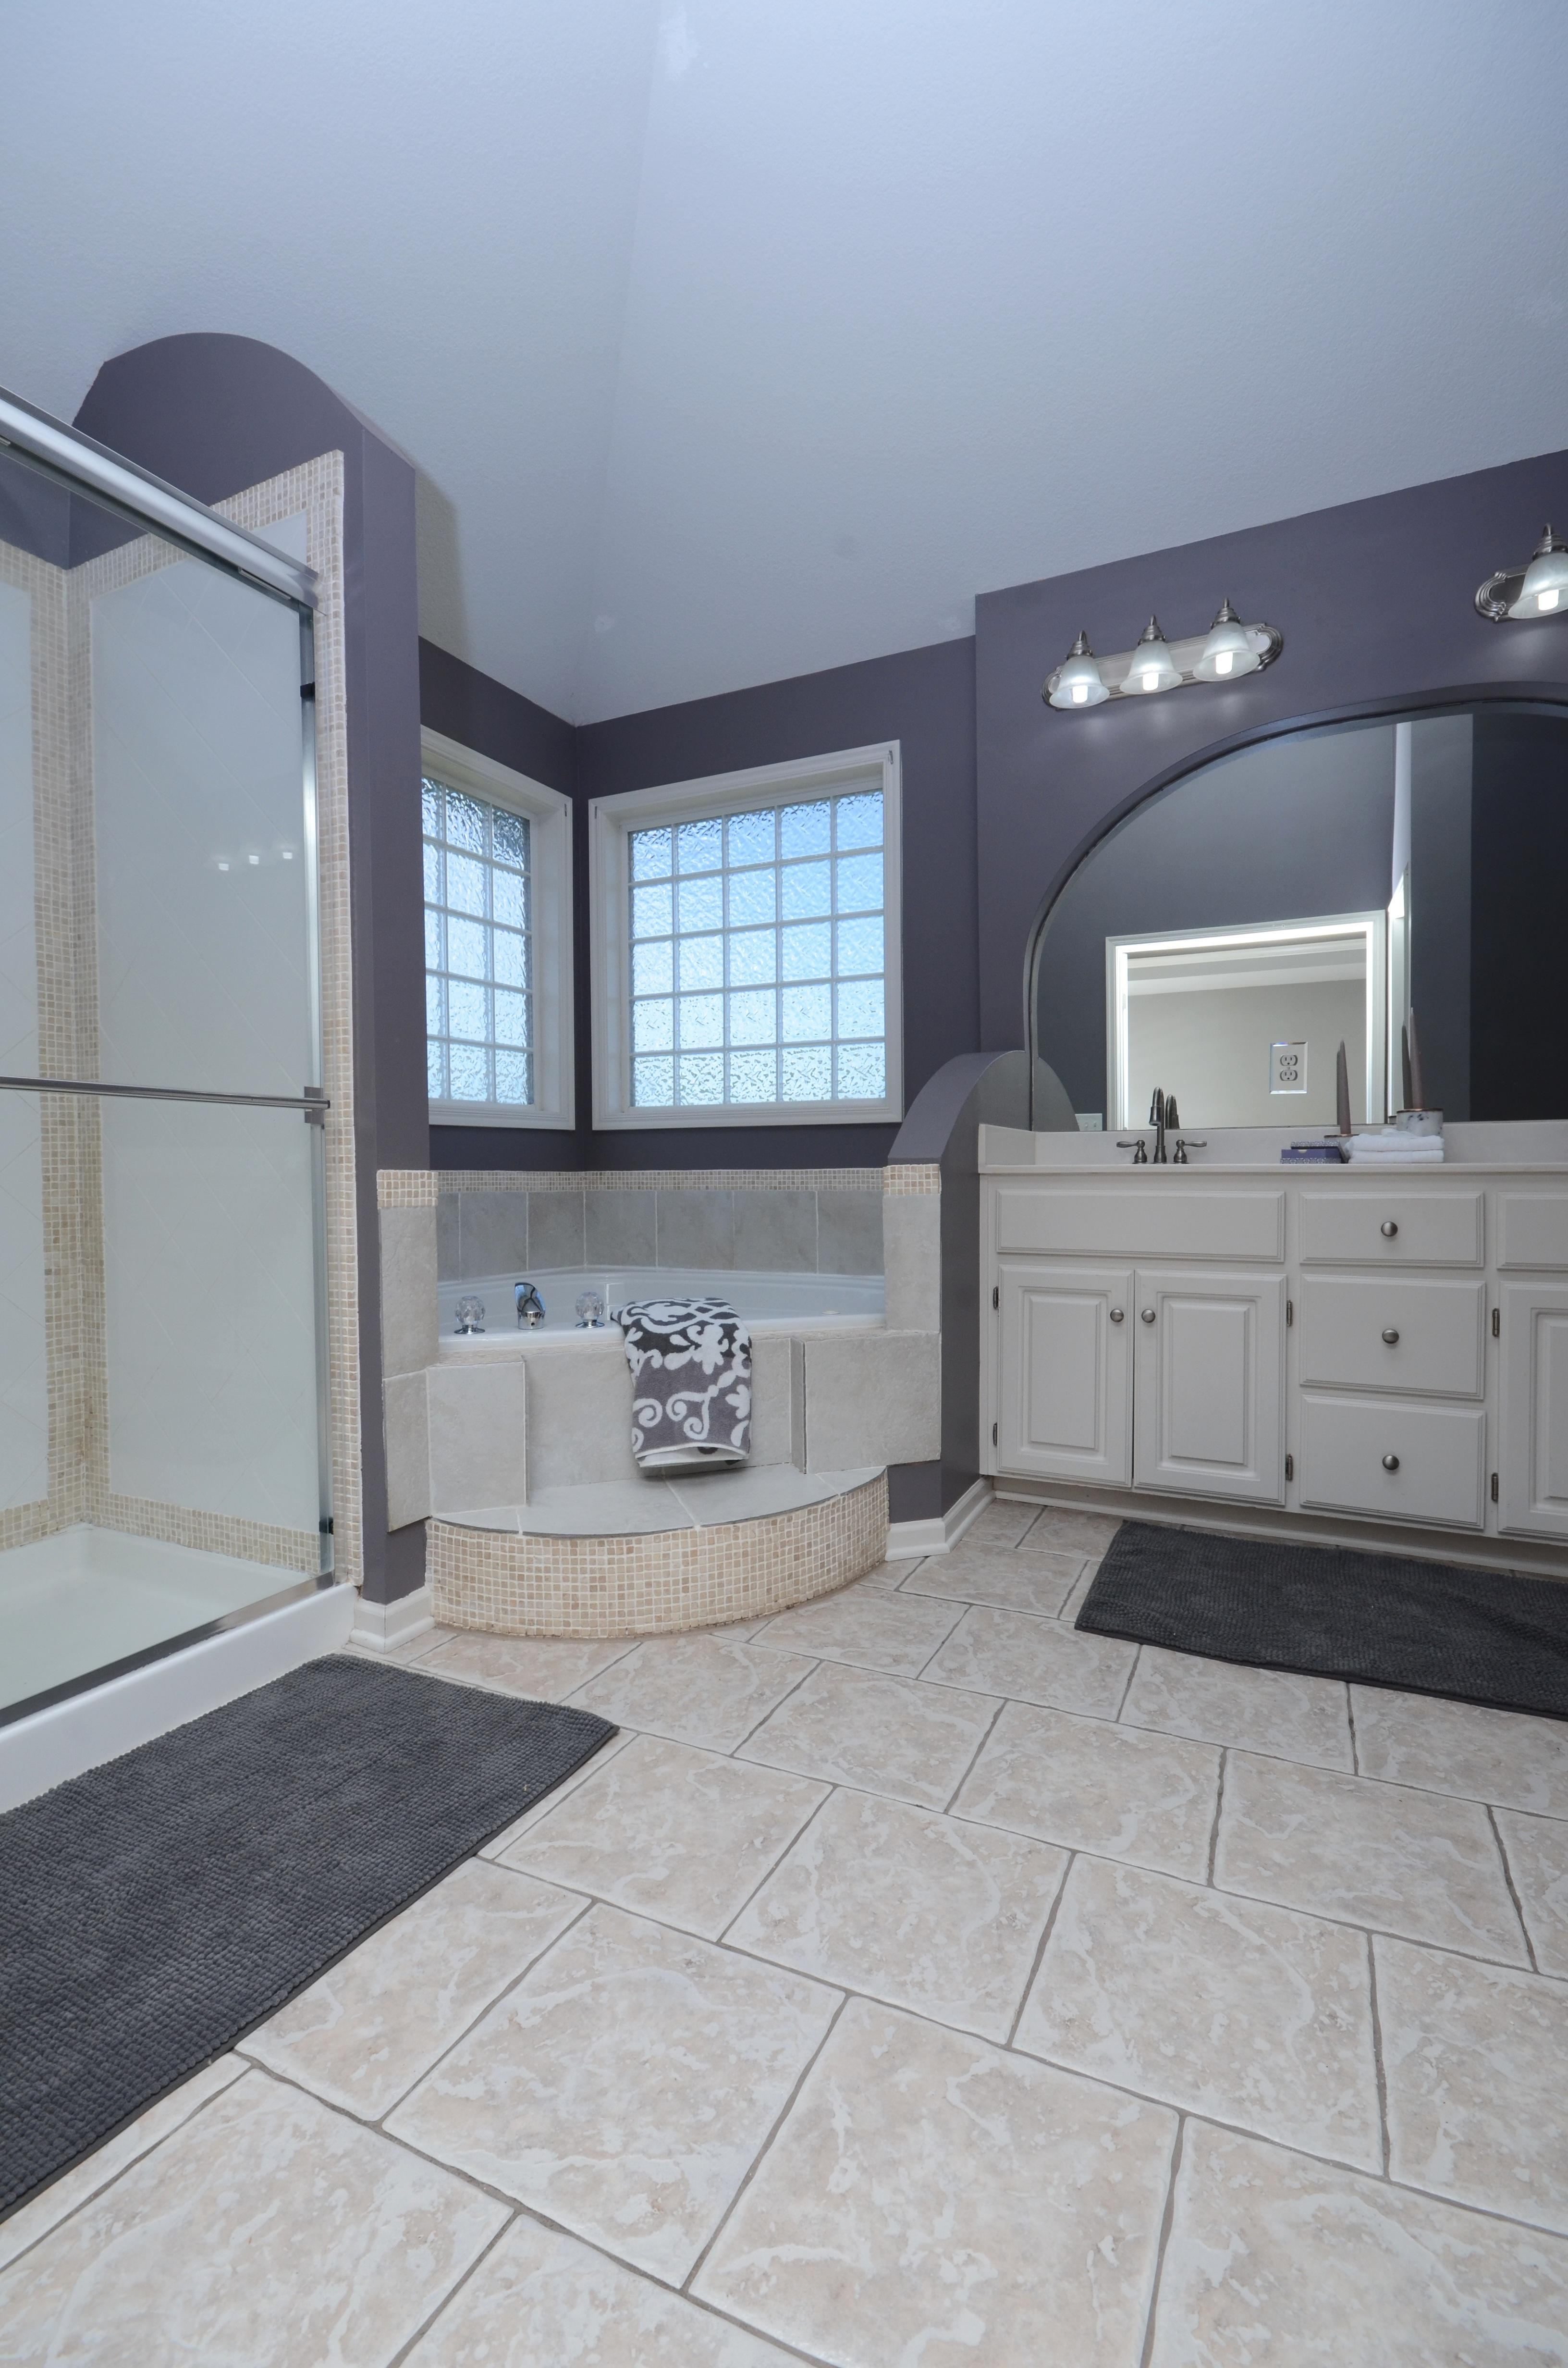 Home Pros Painting & Home Repairs image 2